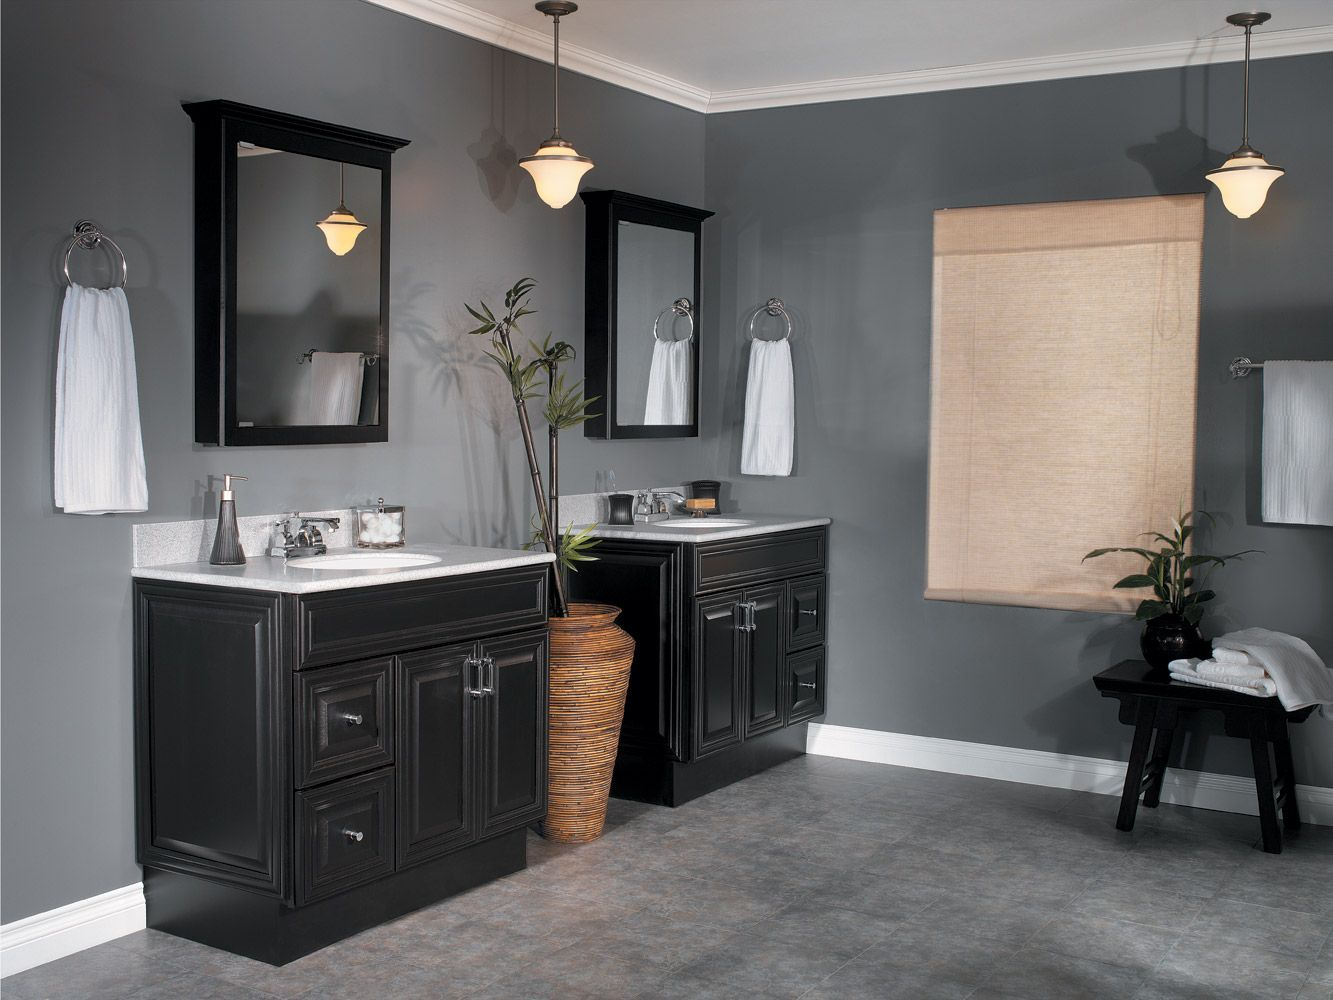 Images Bathroom Dark Wood Vanity Tile Bathroom Wall Along With Black Master Bath Cabinet